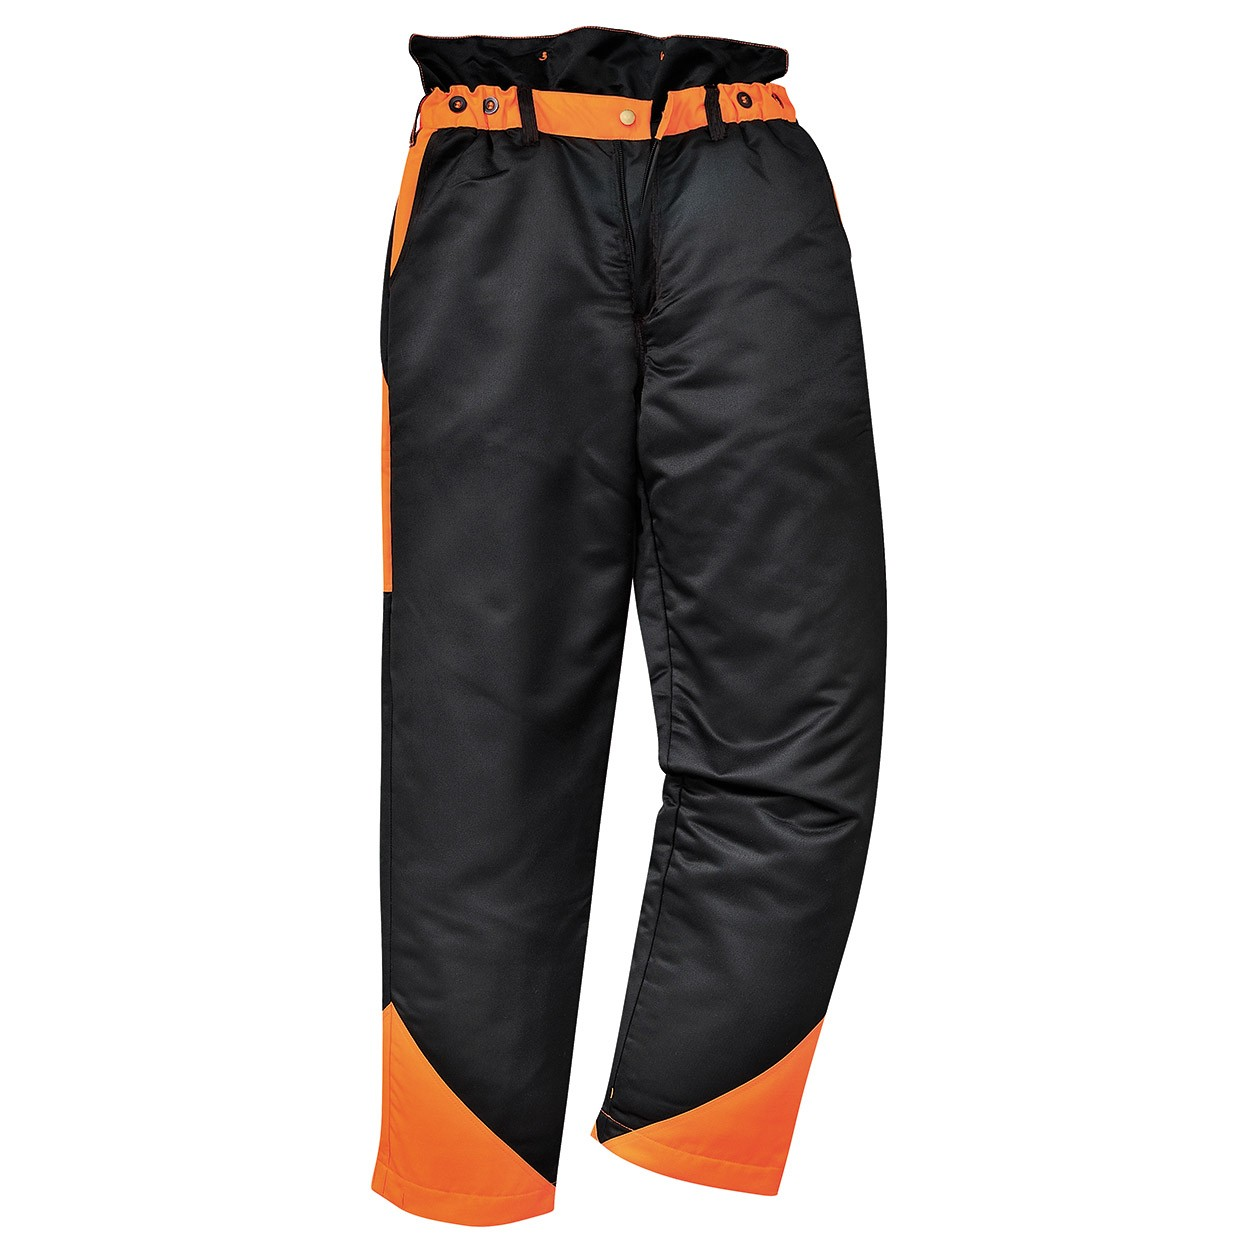 bodyguard-Chainsaw-Oak-Chainsaw-Trouser-Blk/Orange